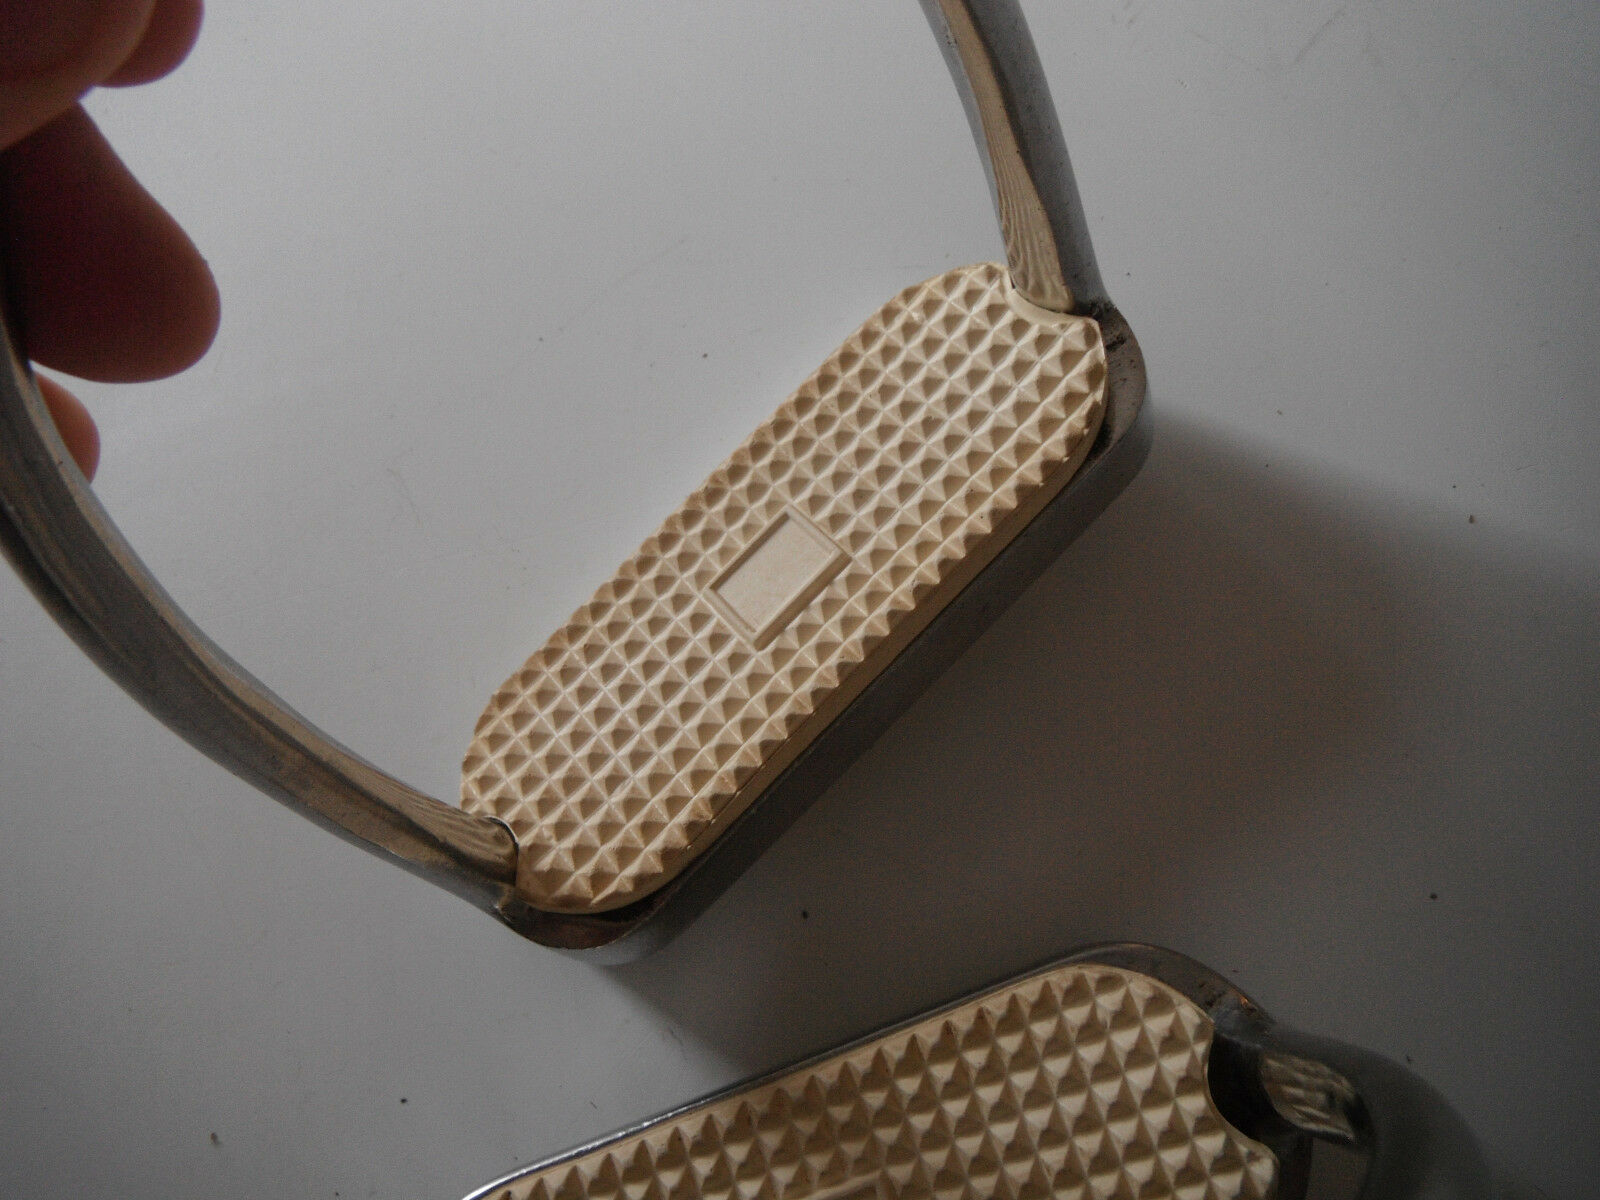 Heavy Clean  Ω saddle stirrups with leather belts Ω Ω     Free ShpN  new style